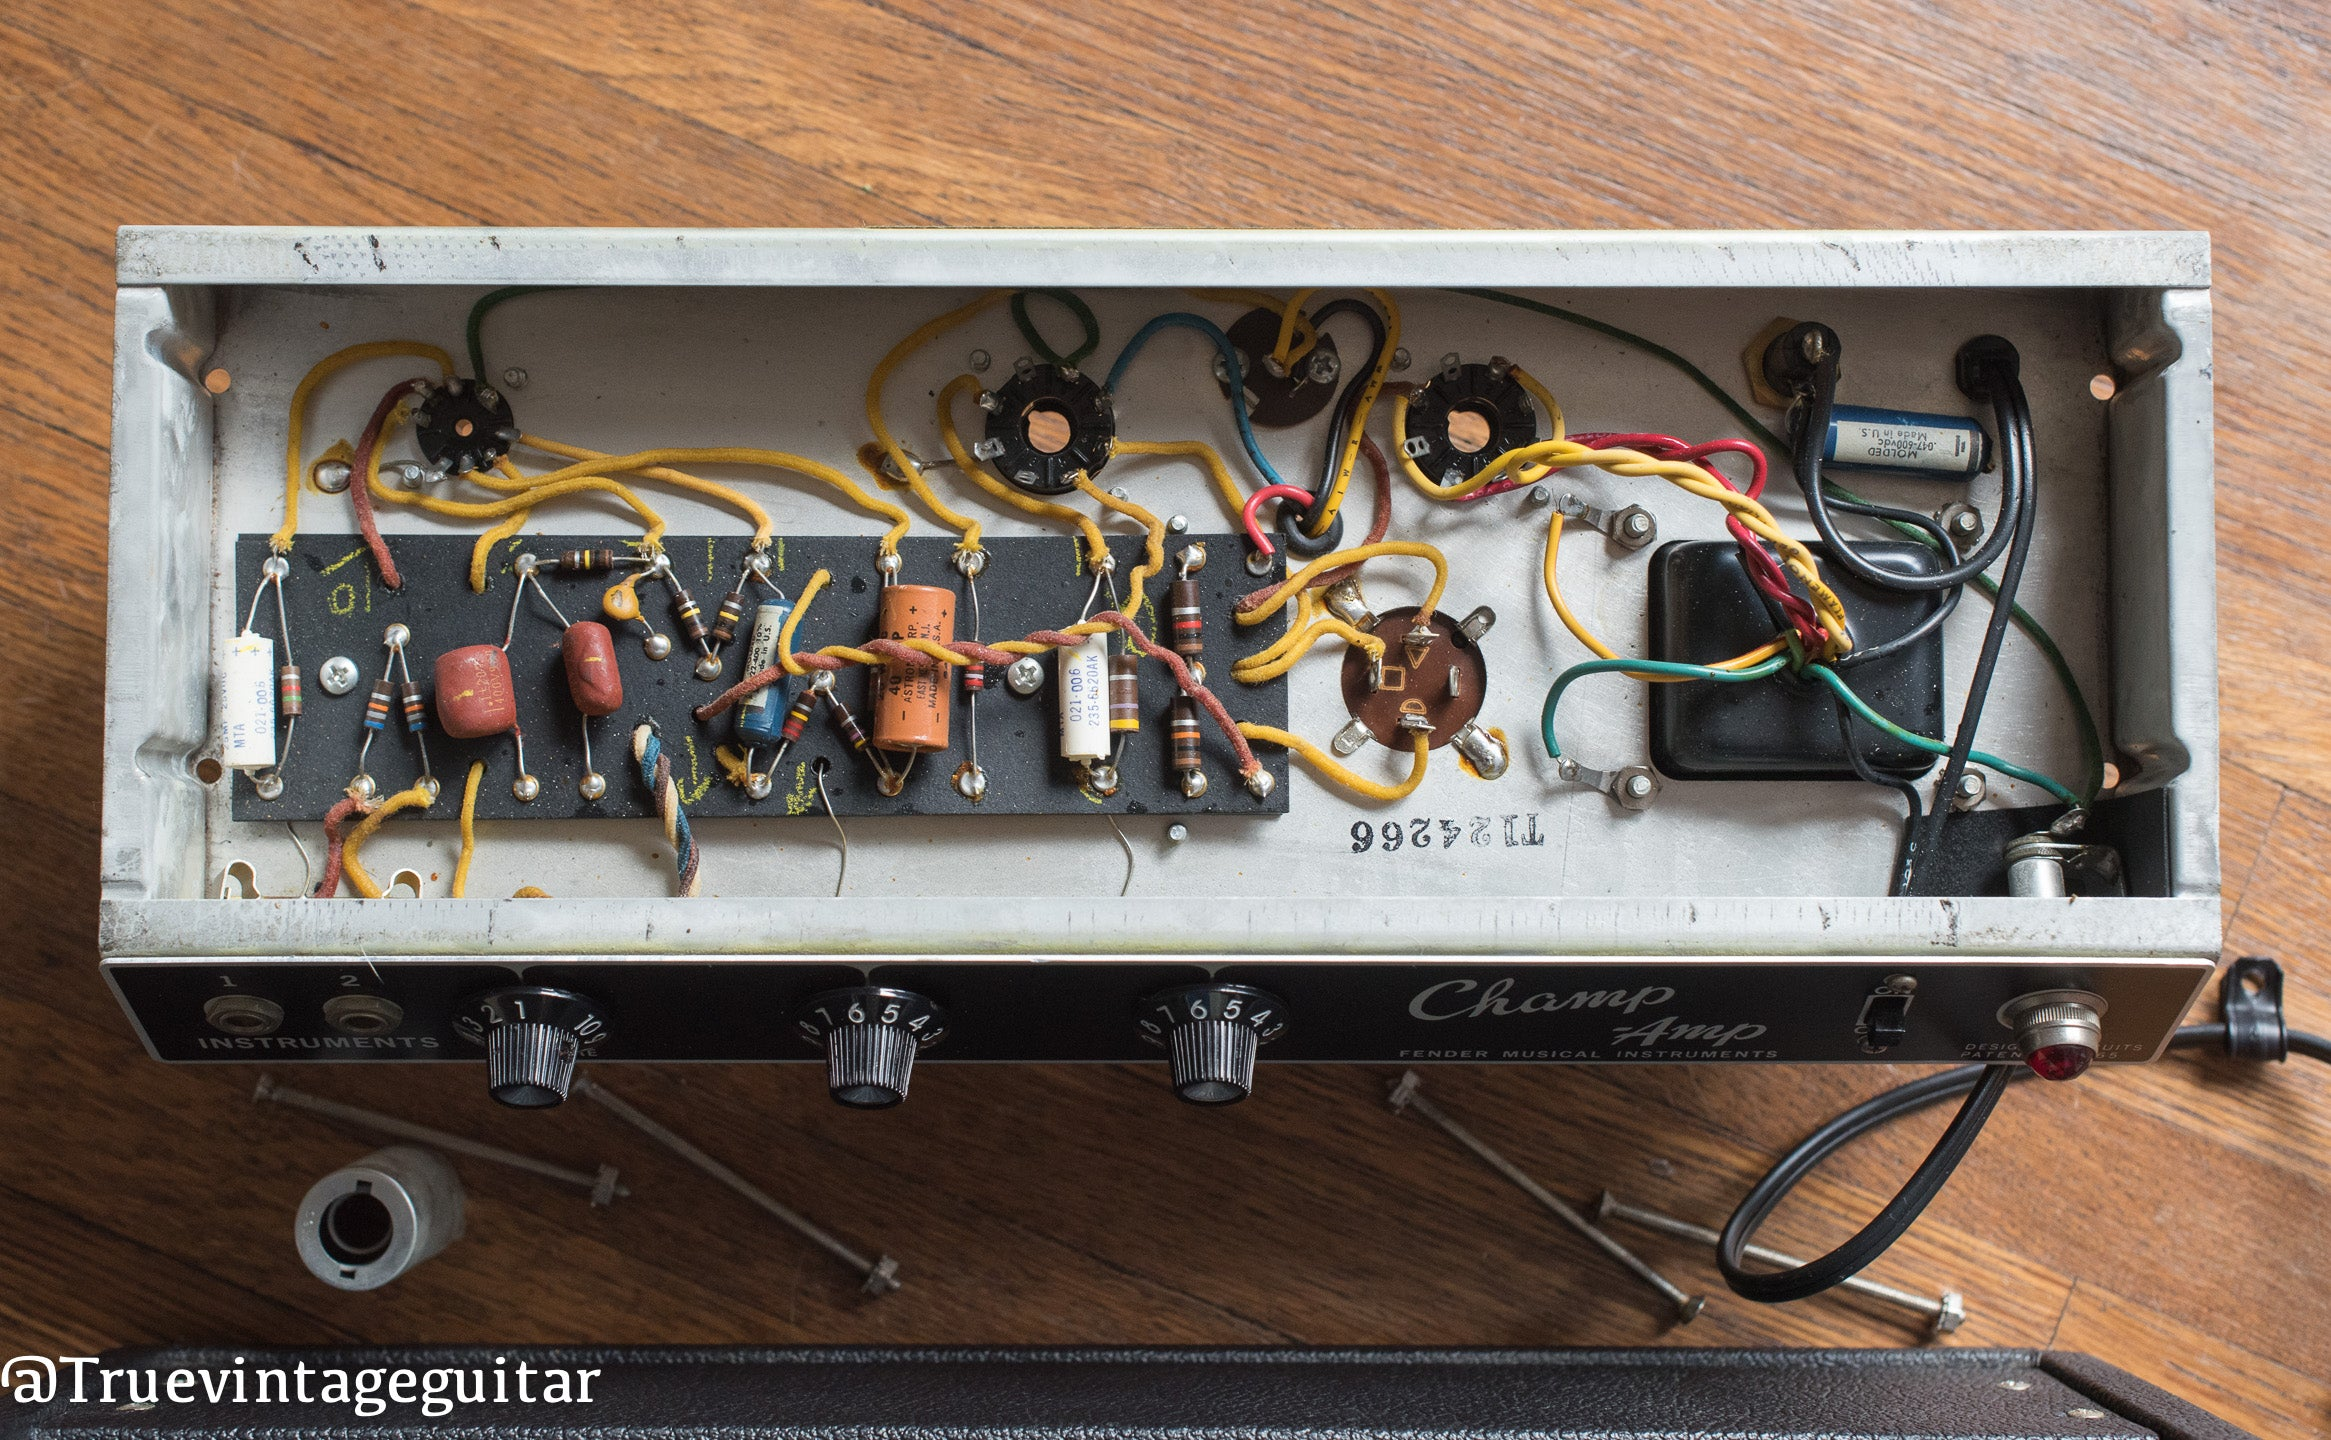 Chassis, circuit, vintage 1966 Fender Champ amp